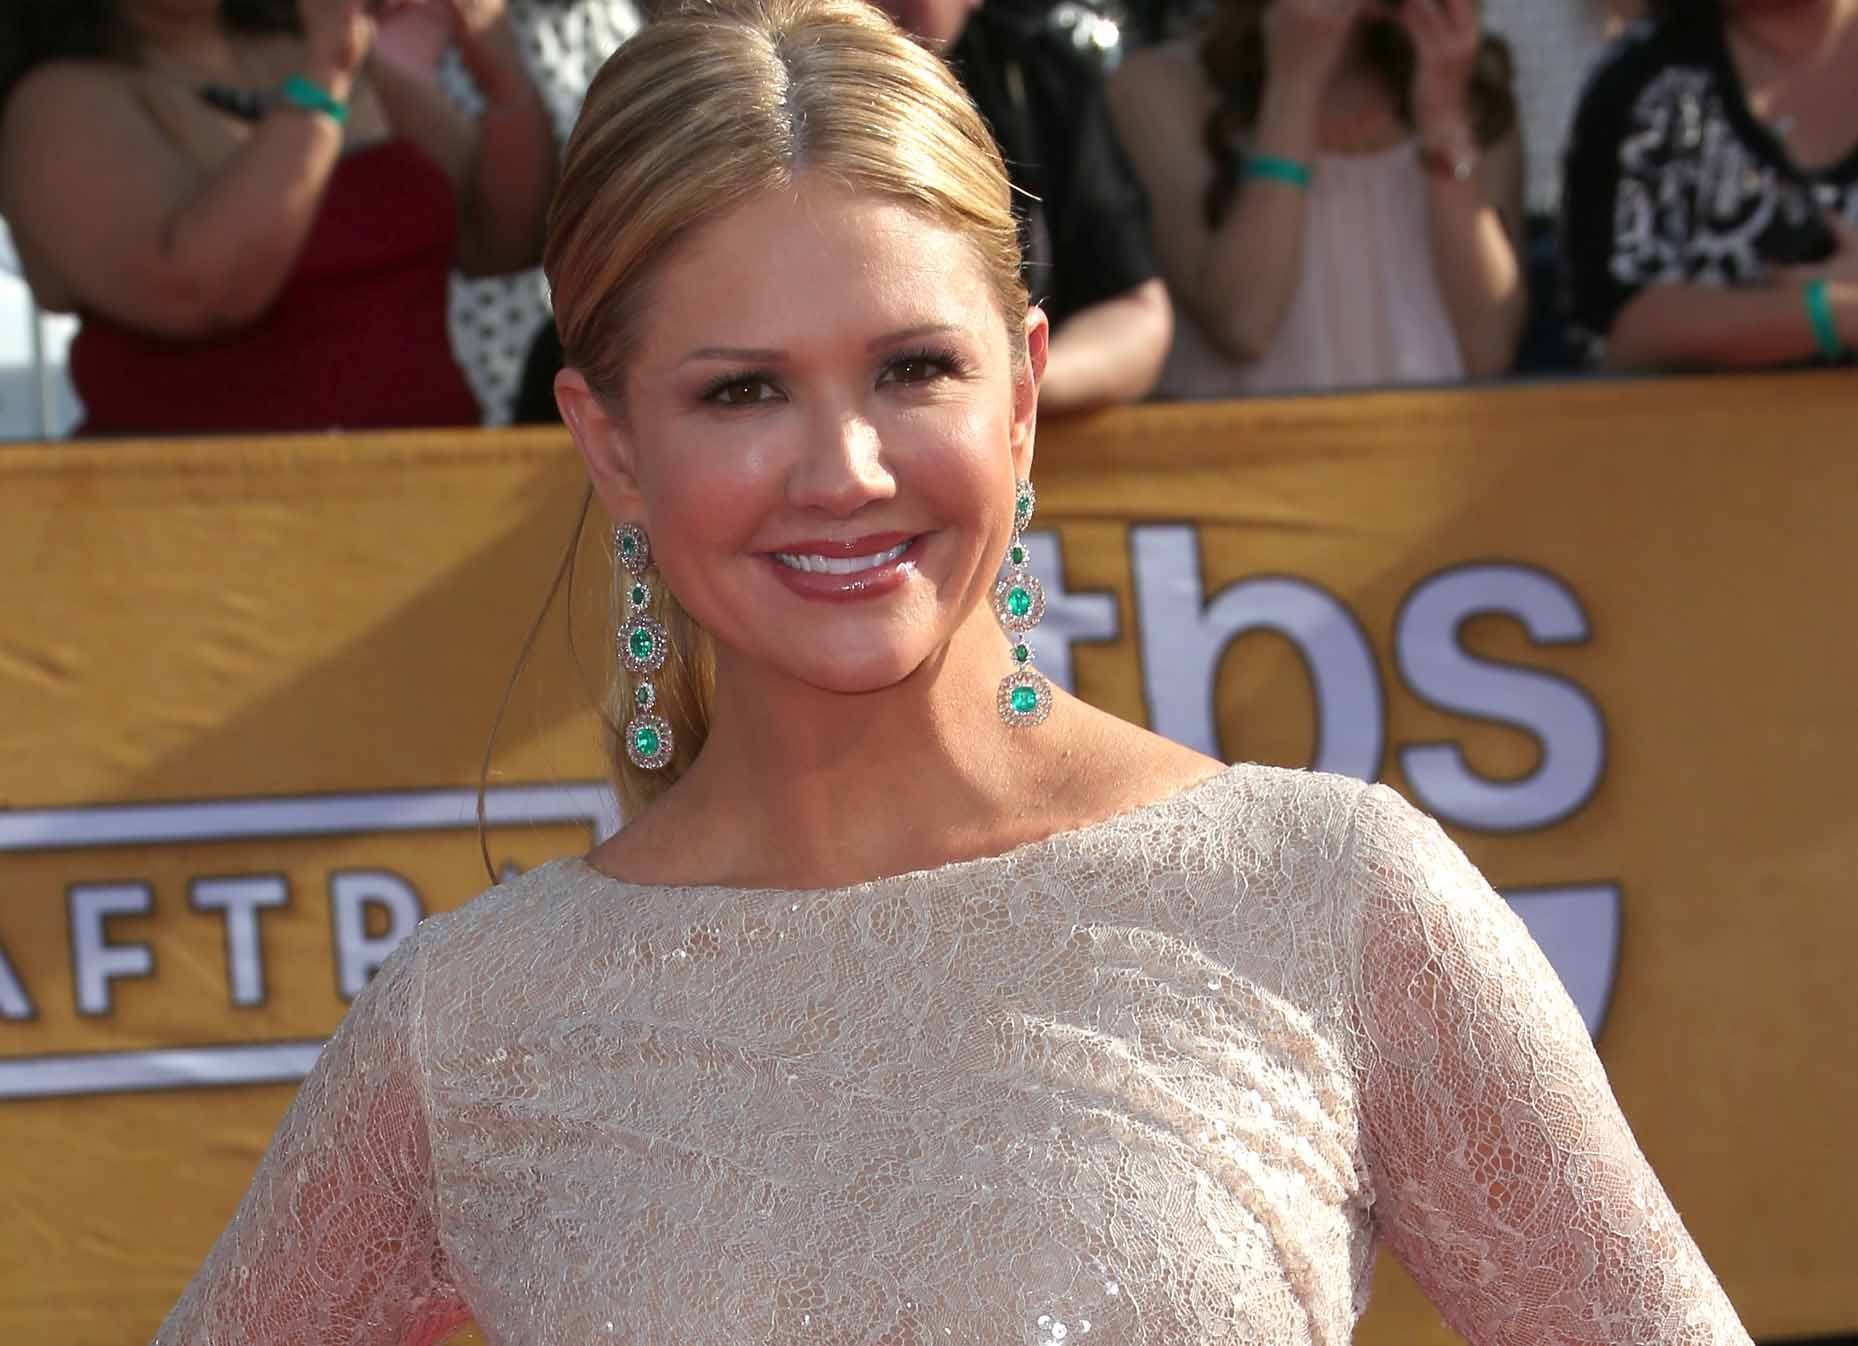 Nancy O'Dell Responds To Donald Trump's Comments About Her On 'Access Hollywood' Tape